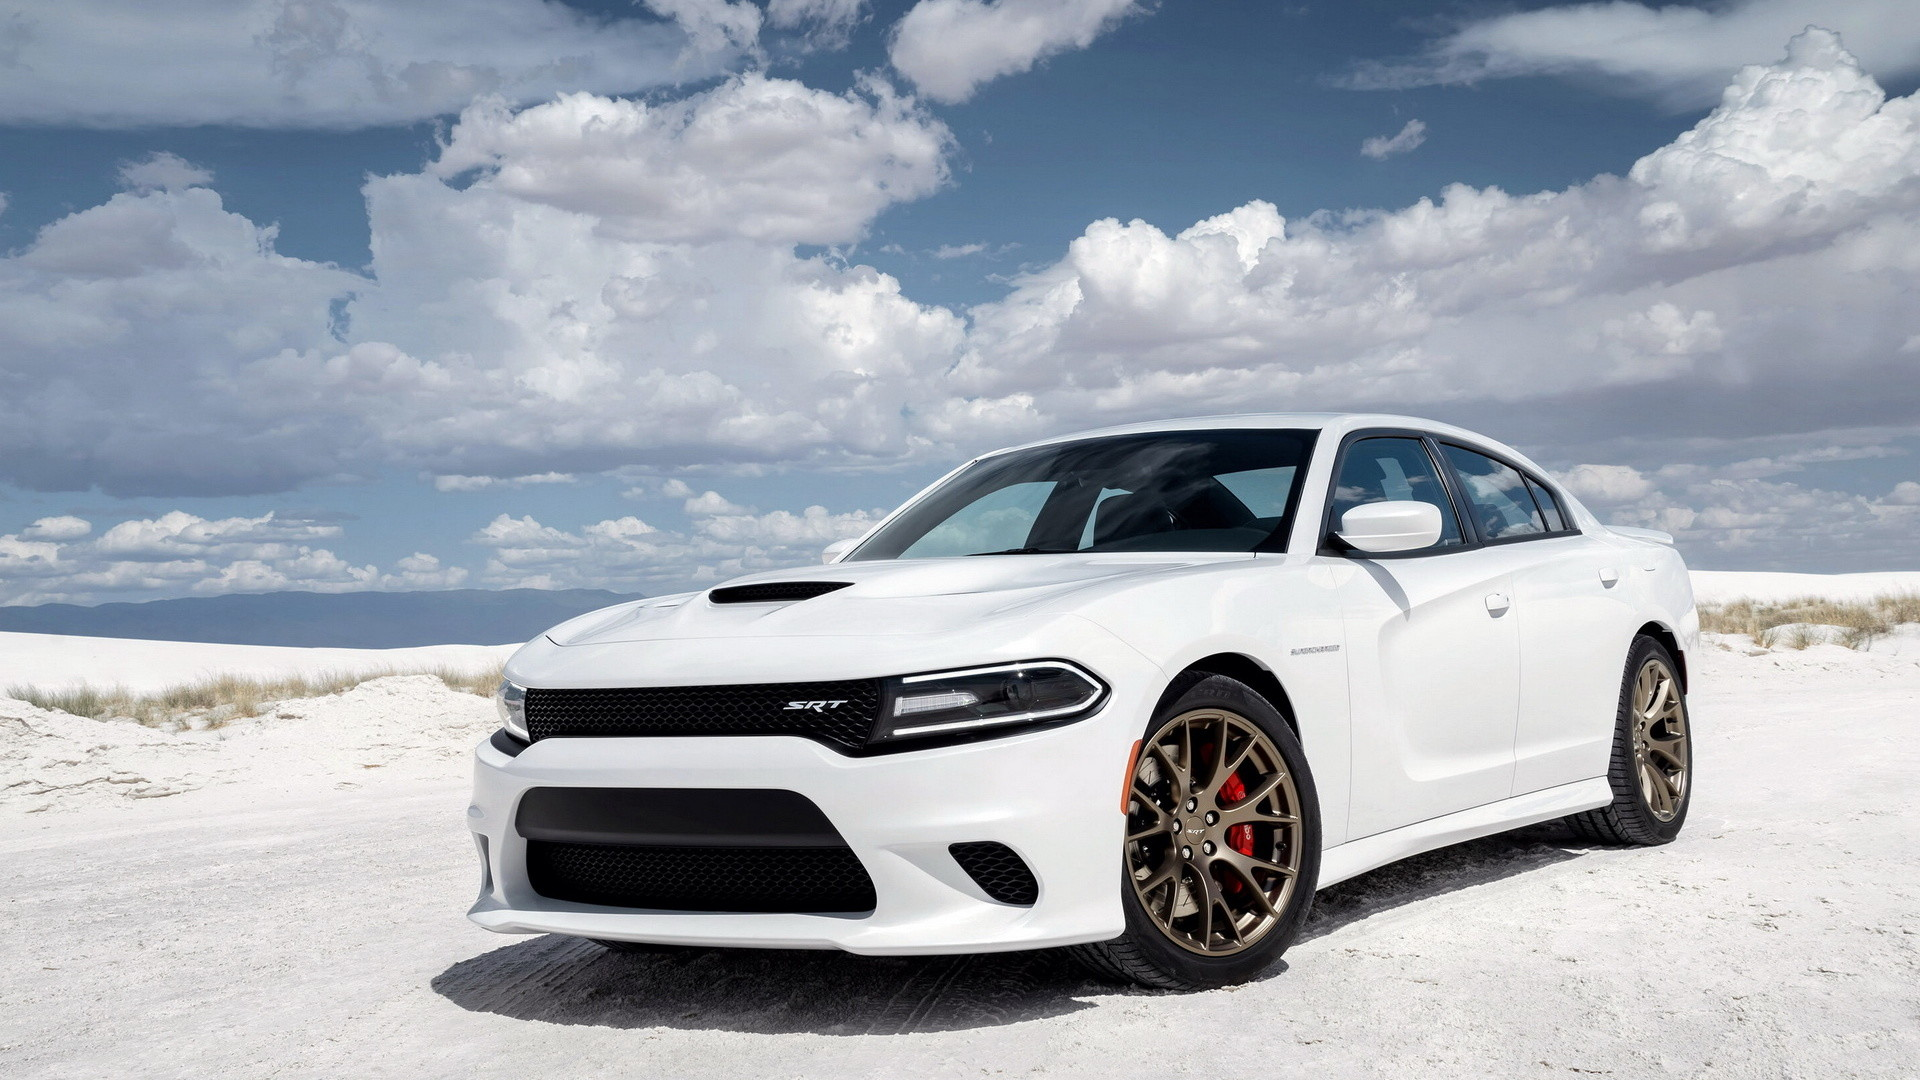 Dodge Charger SRT Hellcat in the desert under the beautiful sky